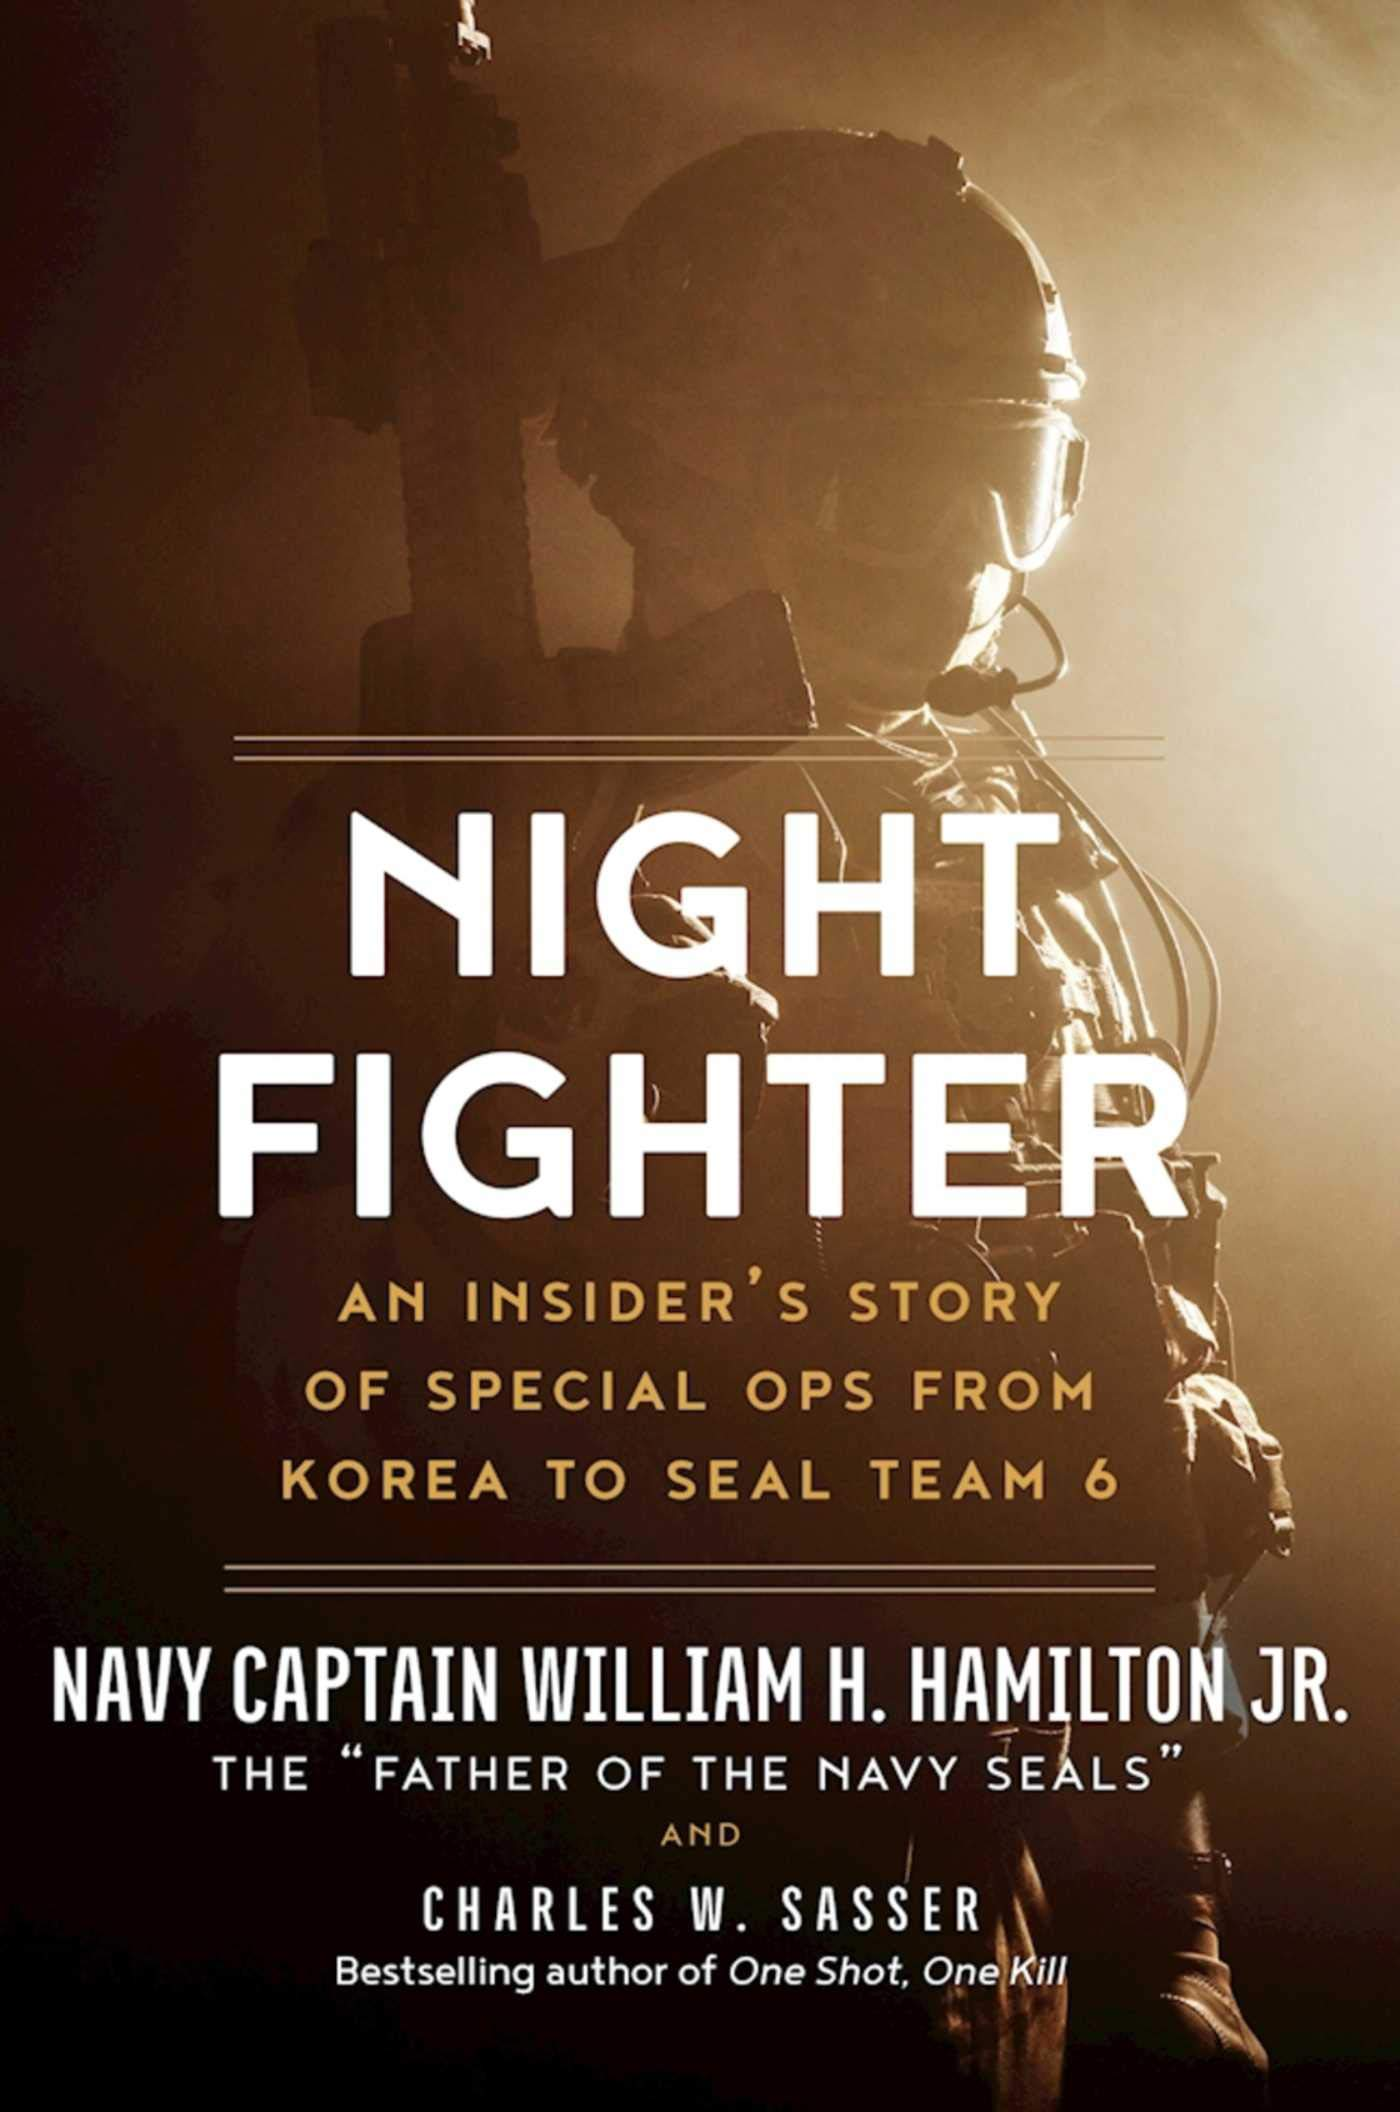 Night Fighter: An Insider's Story of Special Ops from Korea